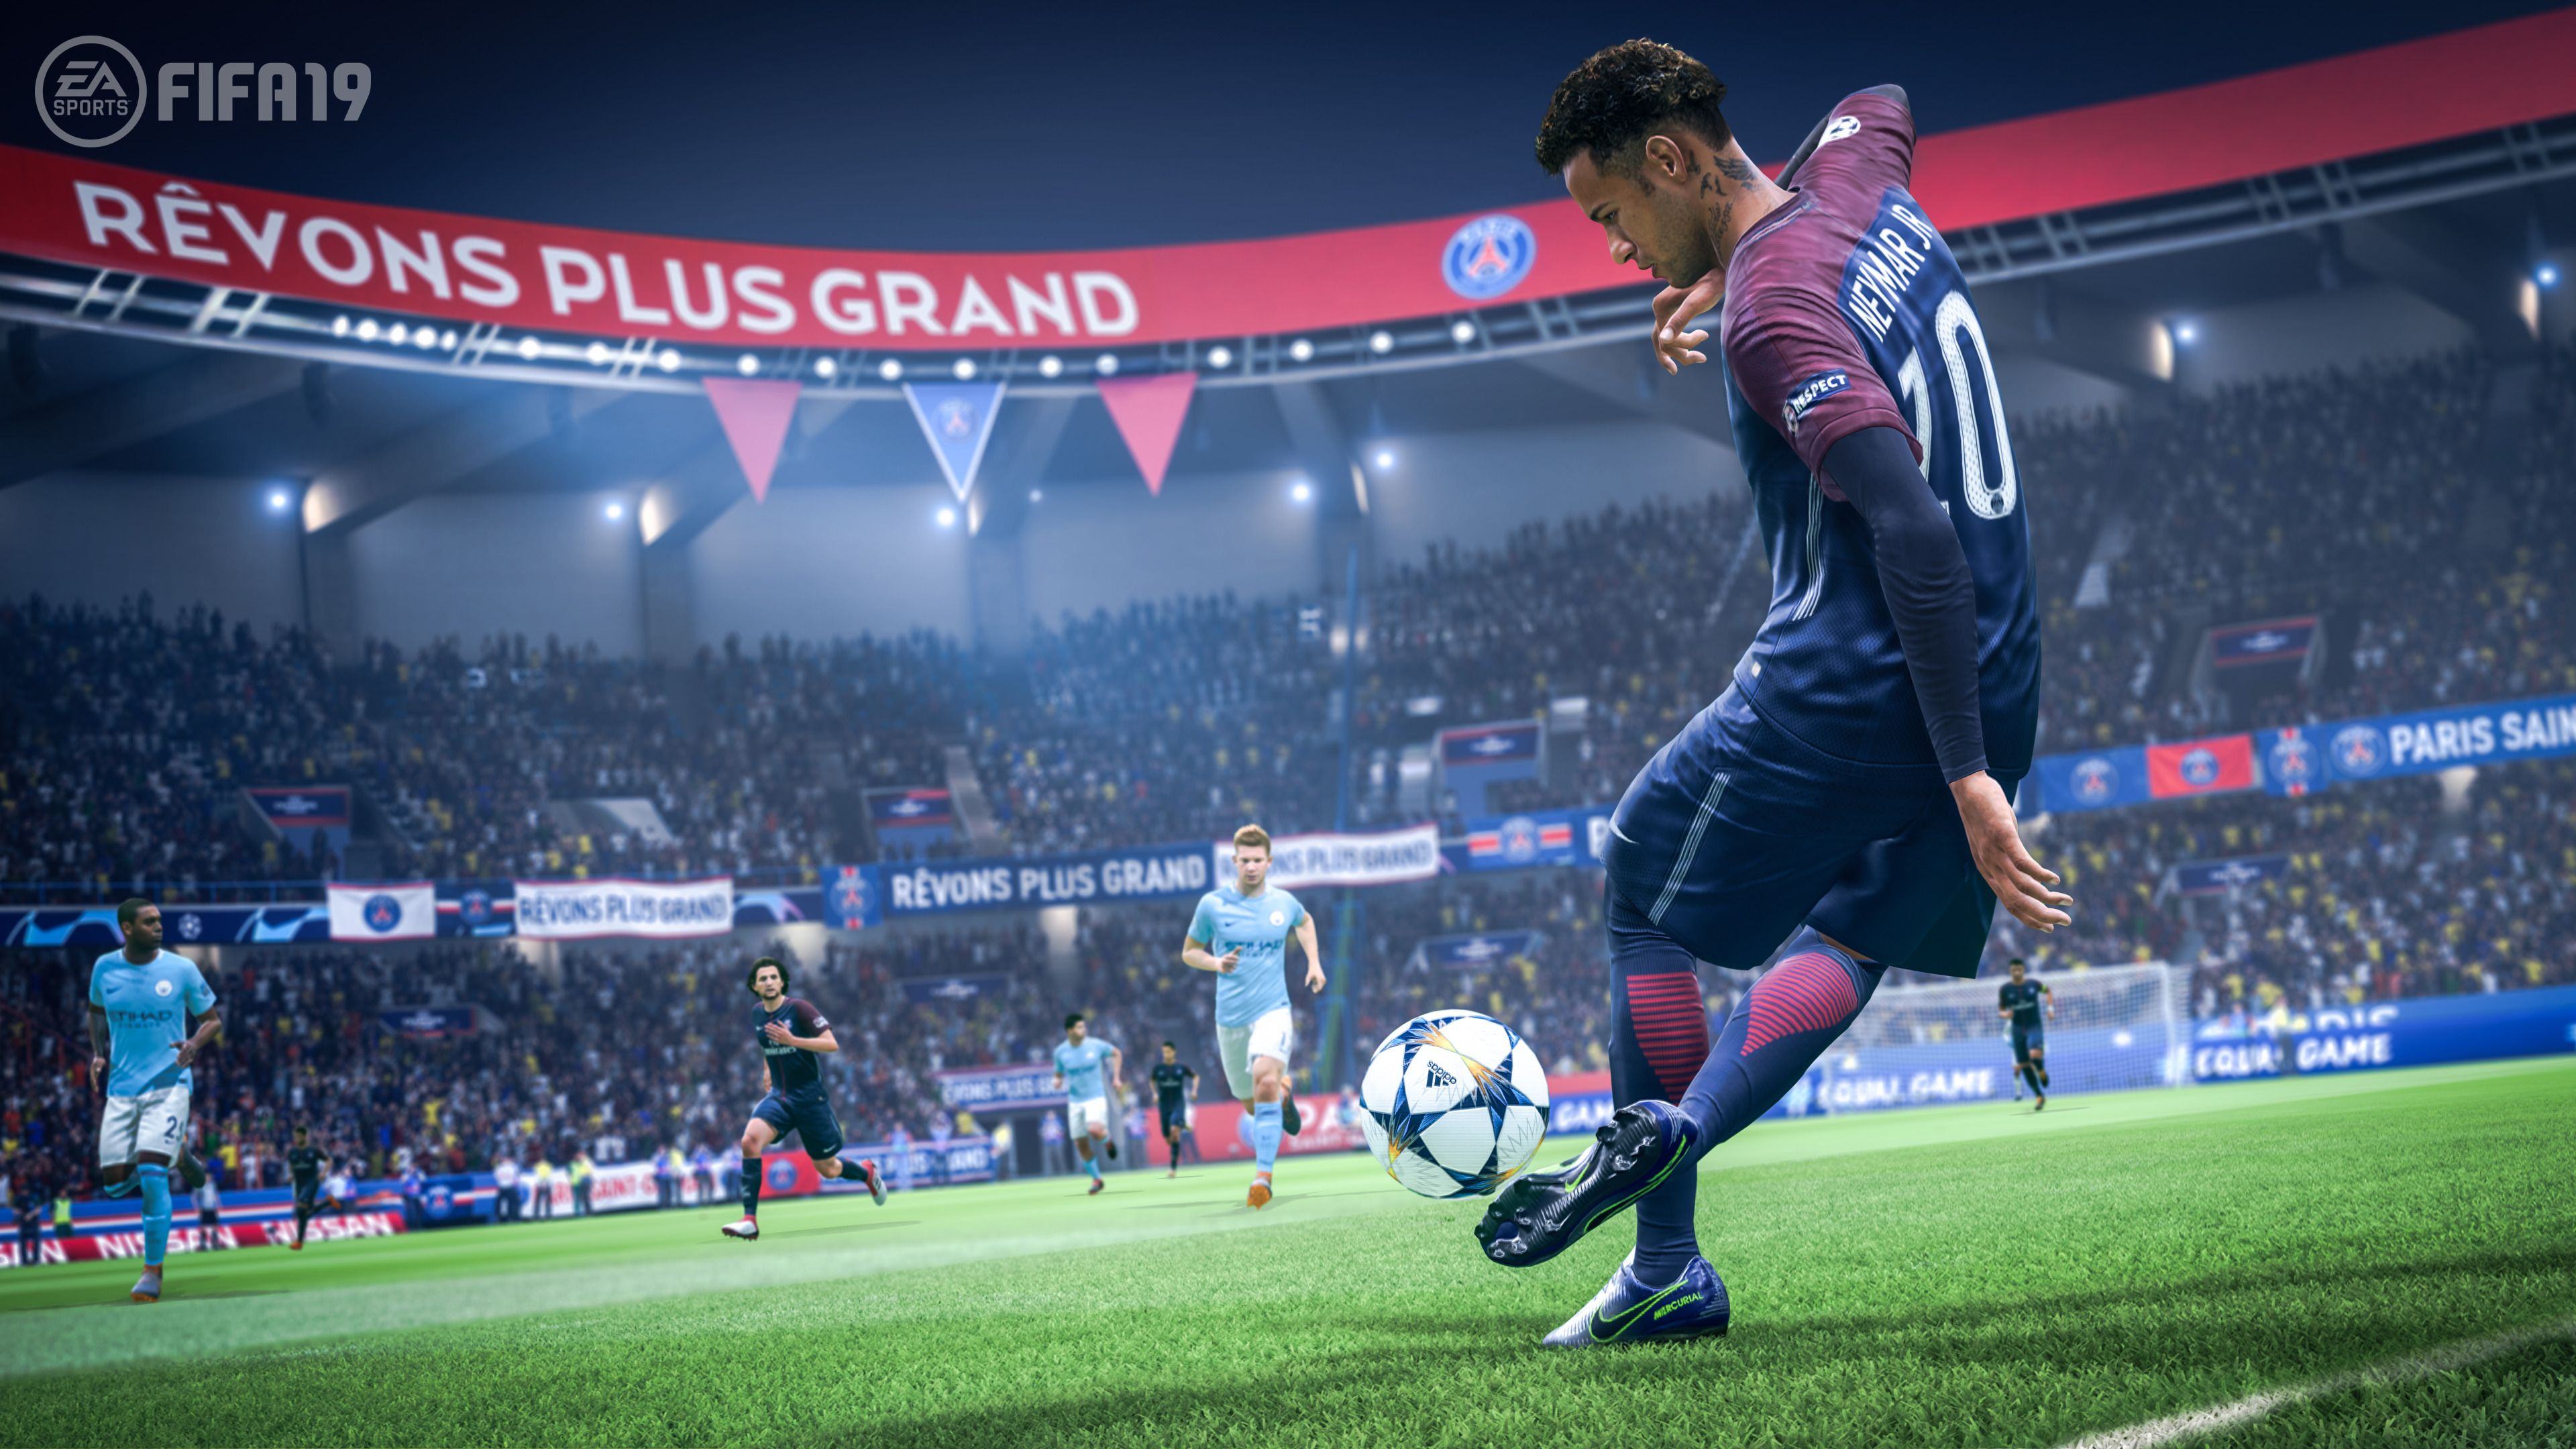 Fifa 19 Wallpapers   Top Fifa 19 Backgrounds   WallpaperAccess 3840x2160